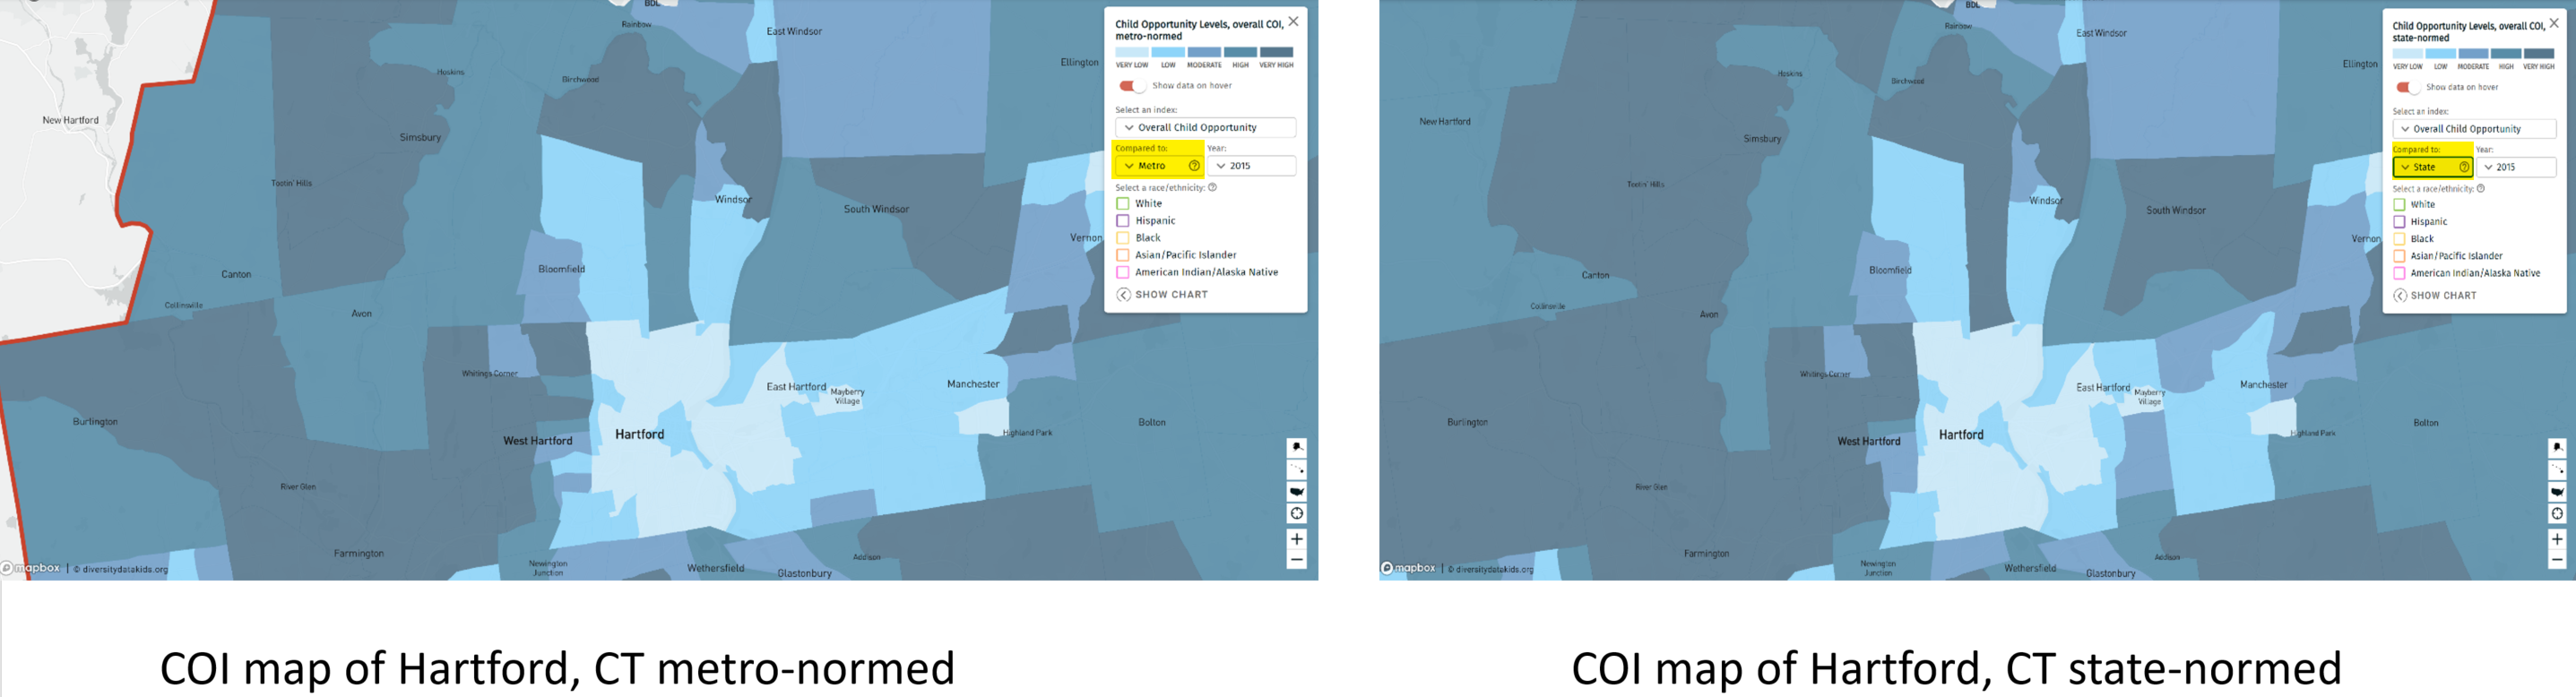 COI maps of Hartford, CT metro and state normed